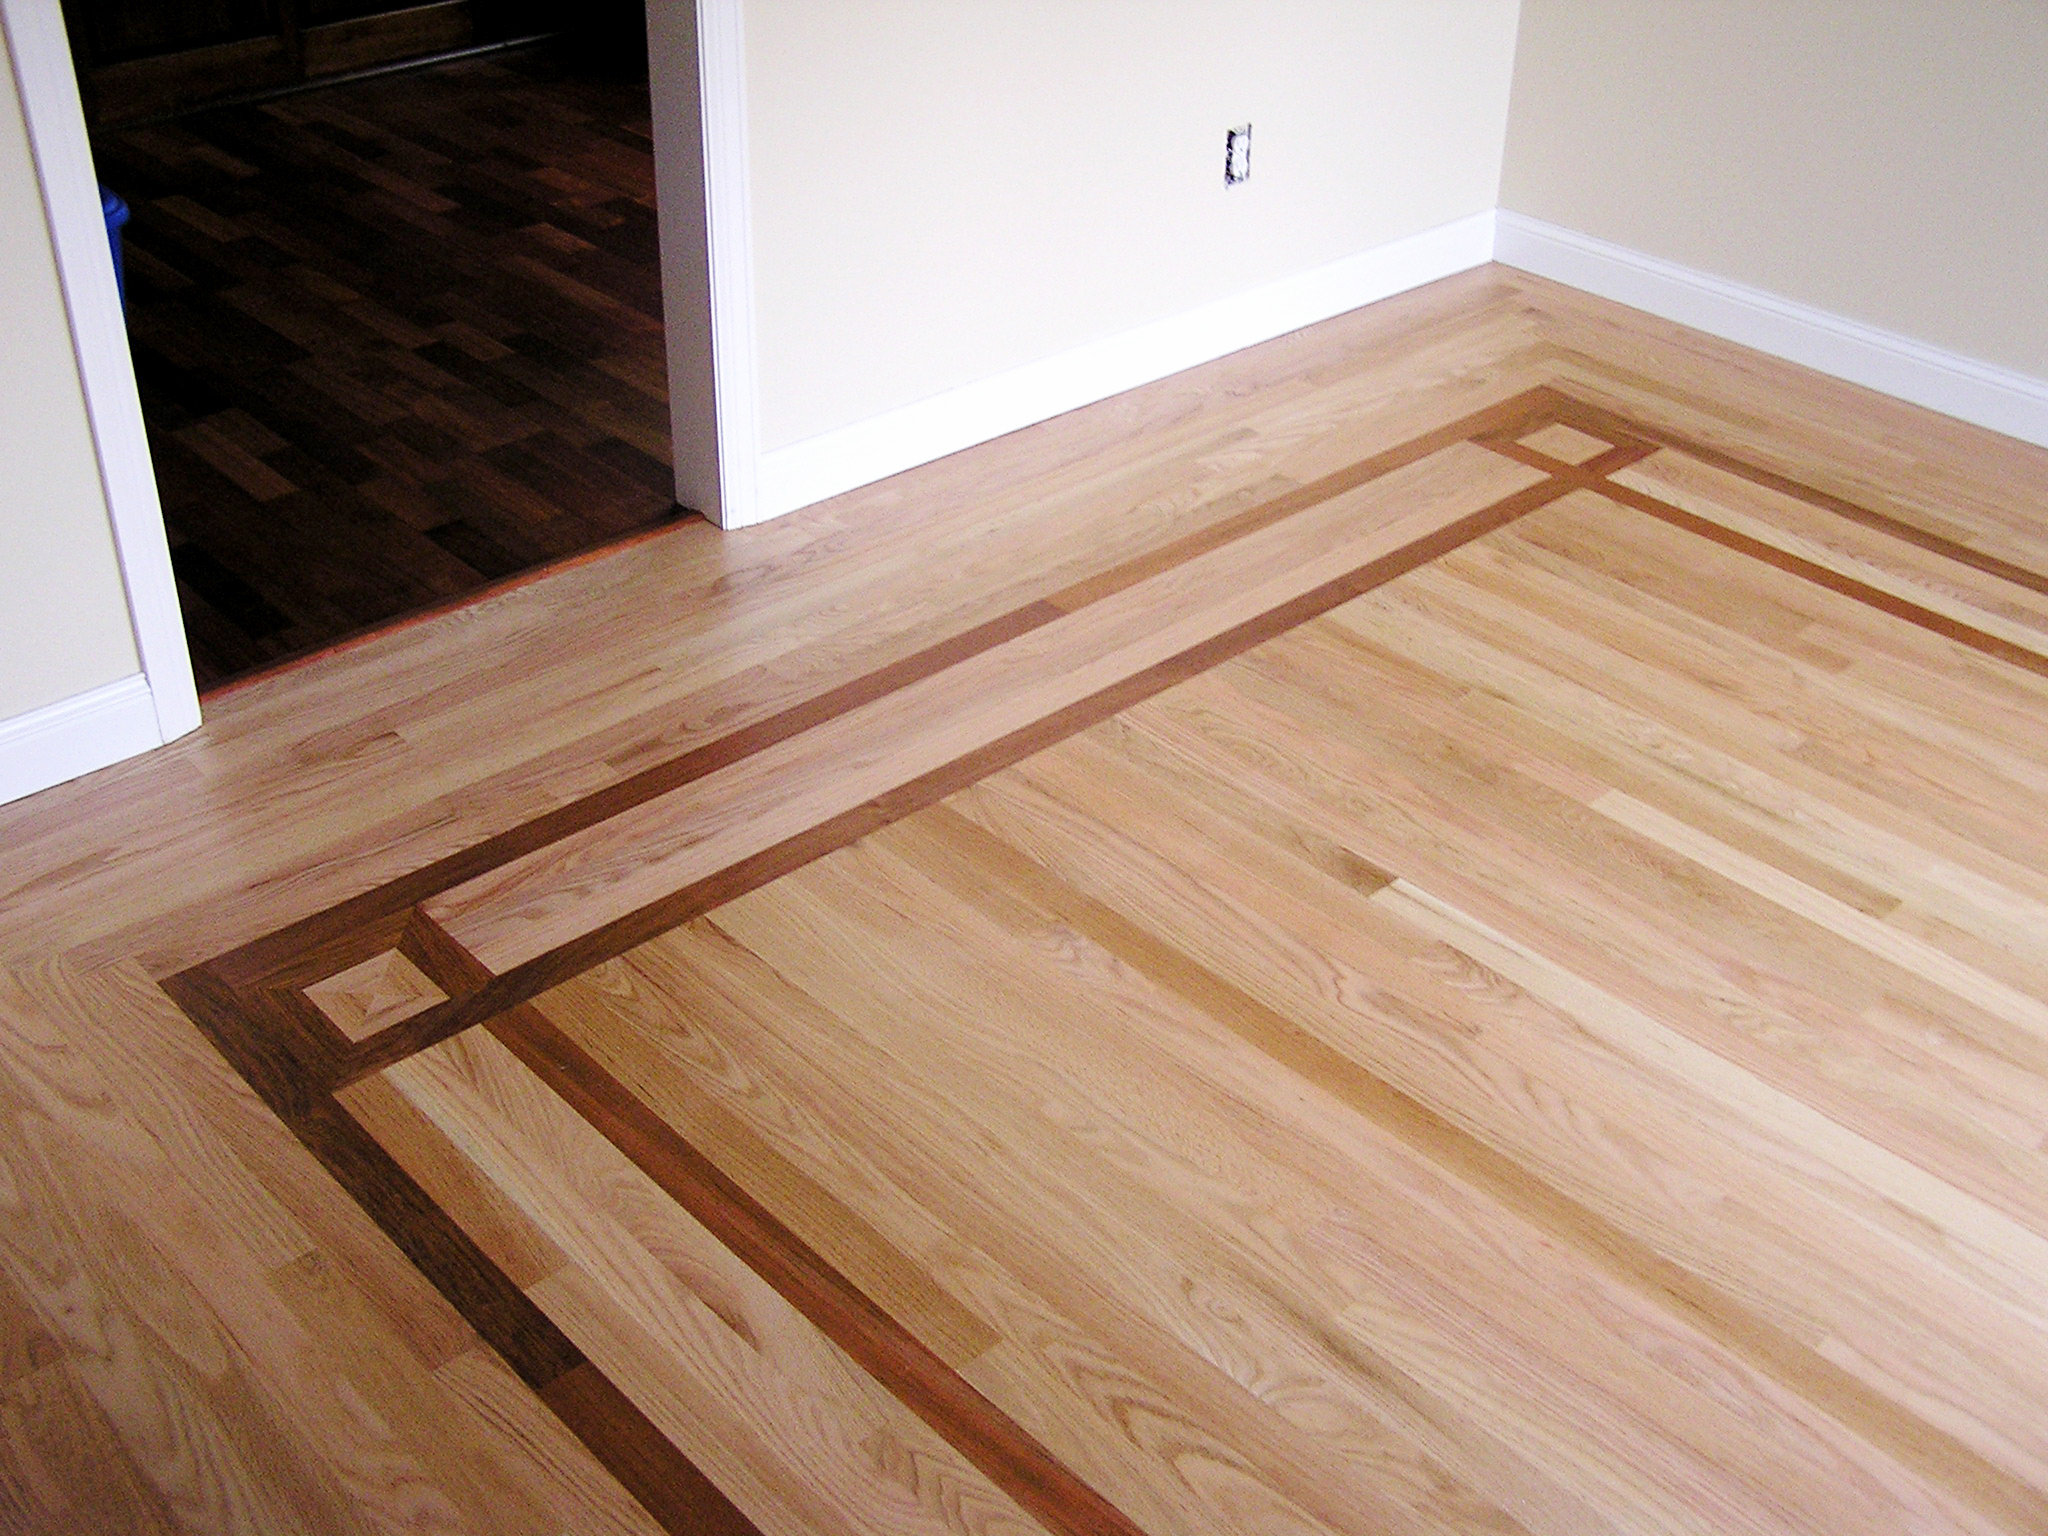 Hardwood bamboo flooring installation in chippewa county for Custom hardwood flooring